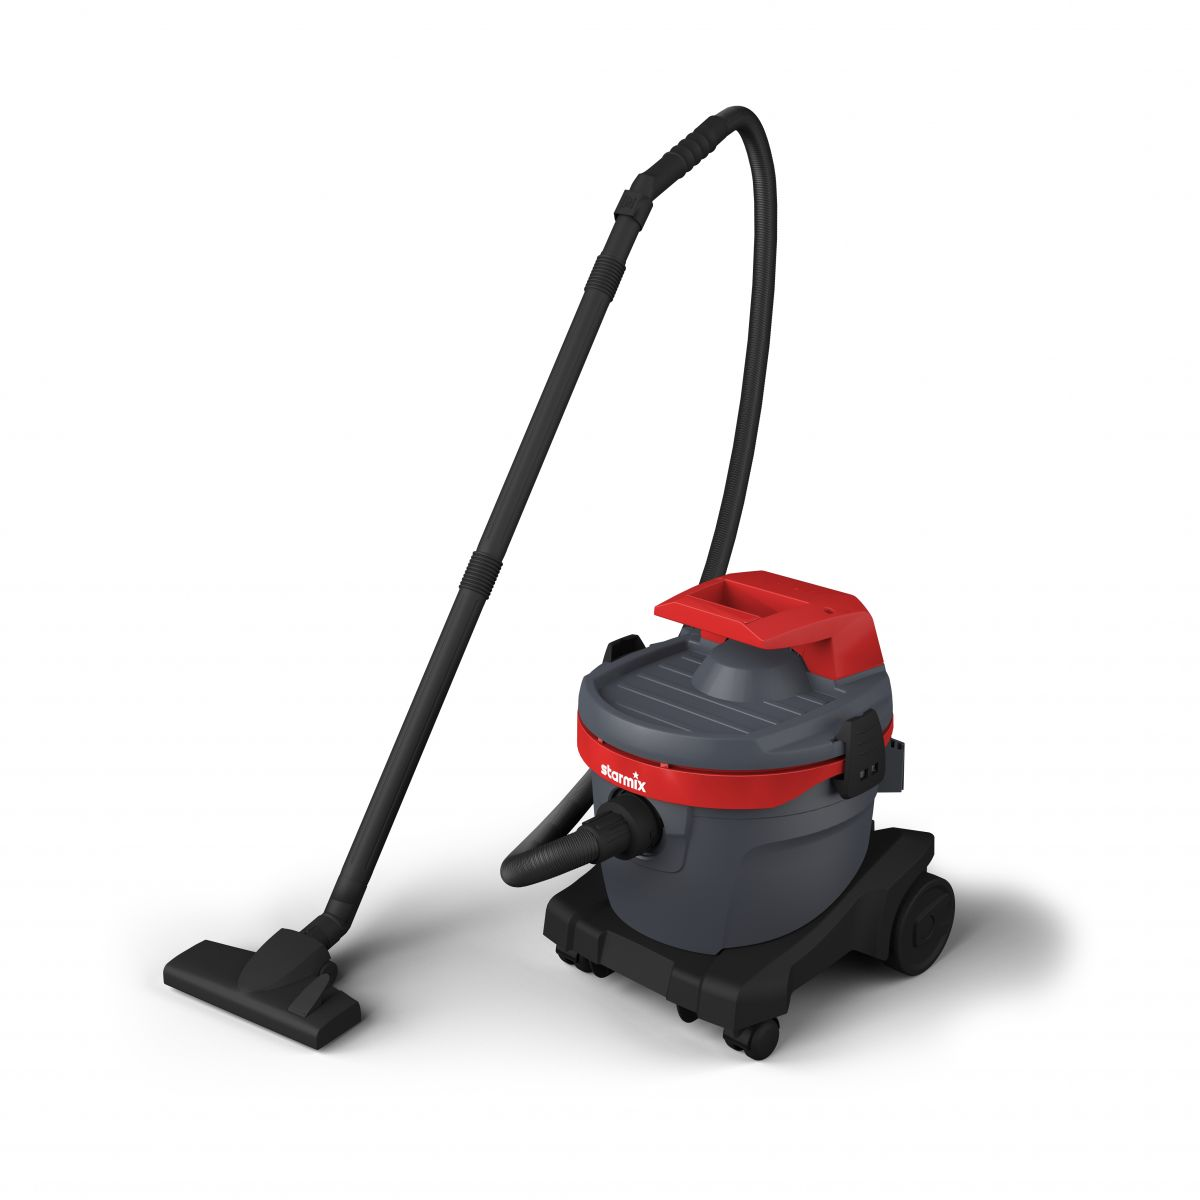 Industry vacuum cleaner eSwift 1220 HK, wet/dry vacuum cleaner with basic accessories